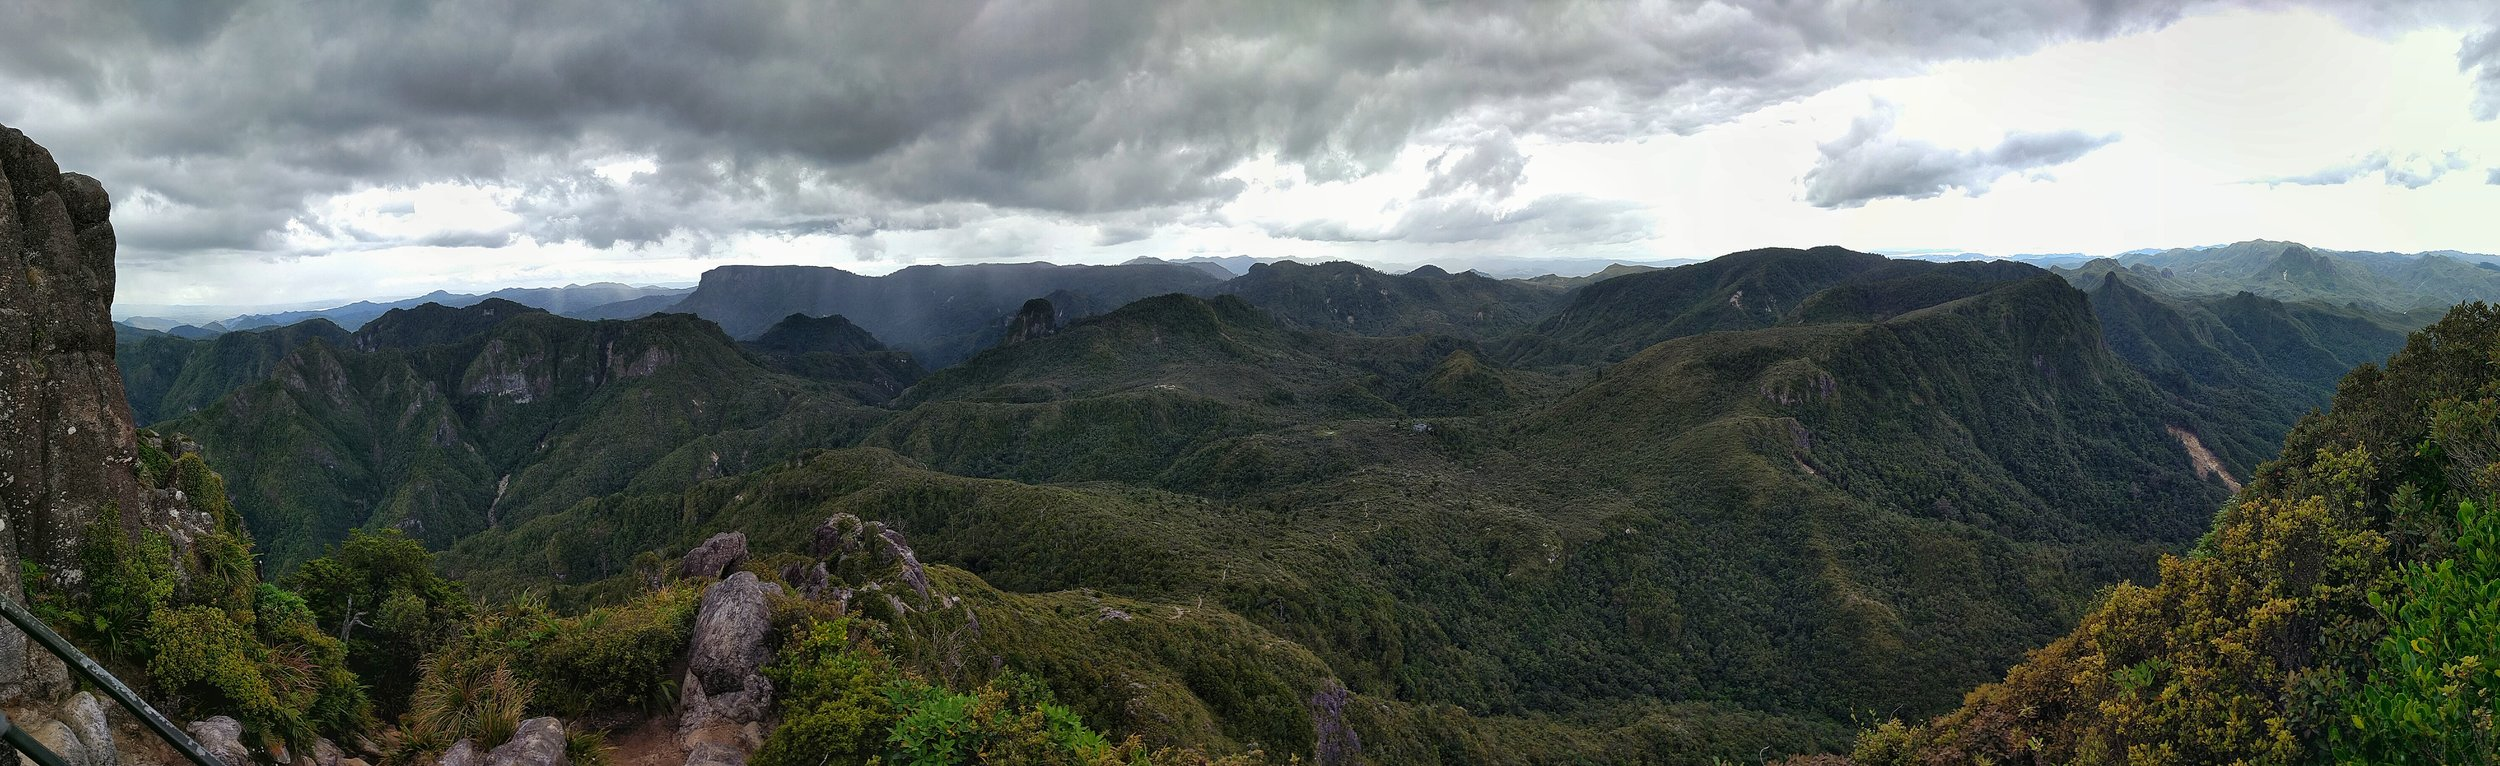 What a fabulous view from the pinnacles summit! can you spot the pinnacles hut?